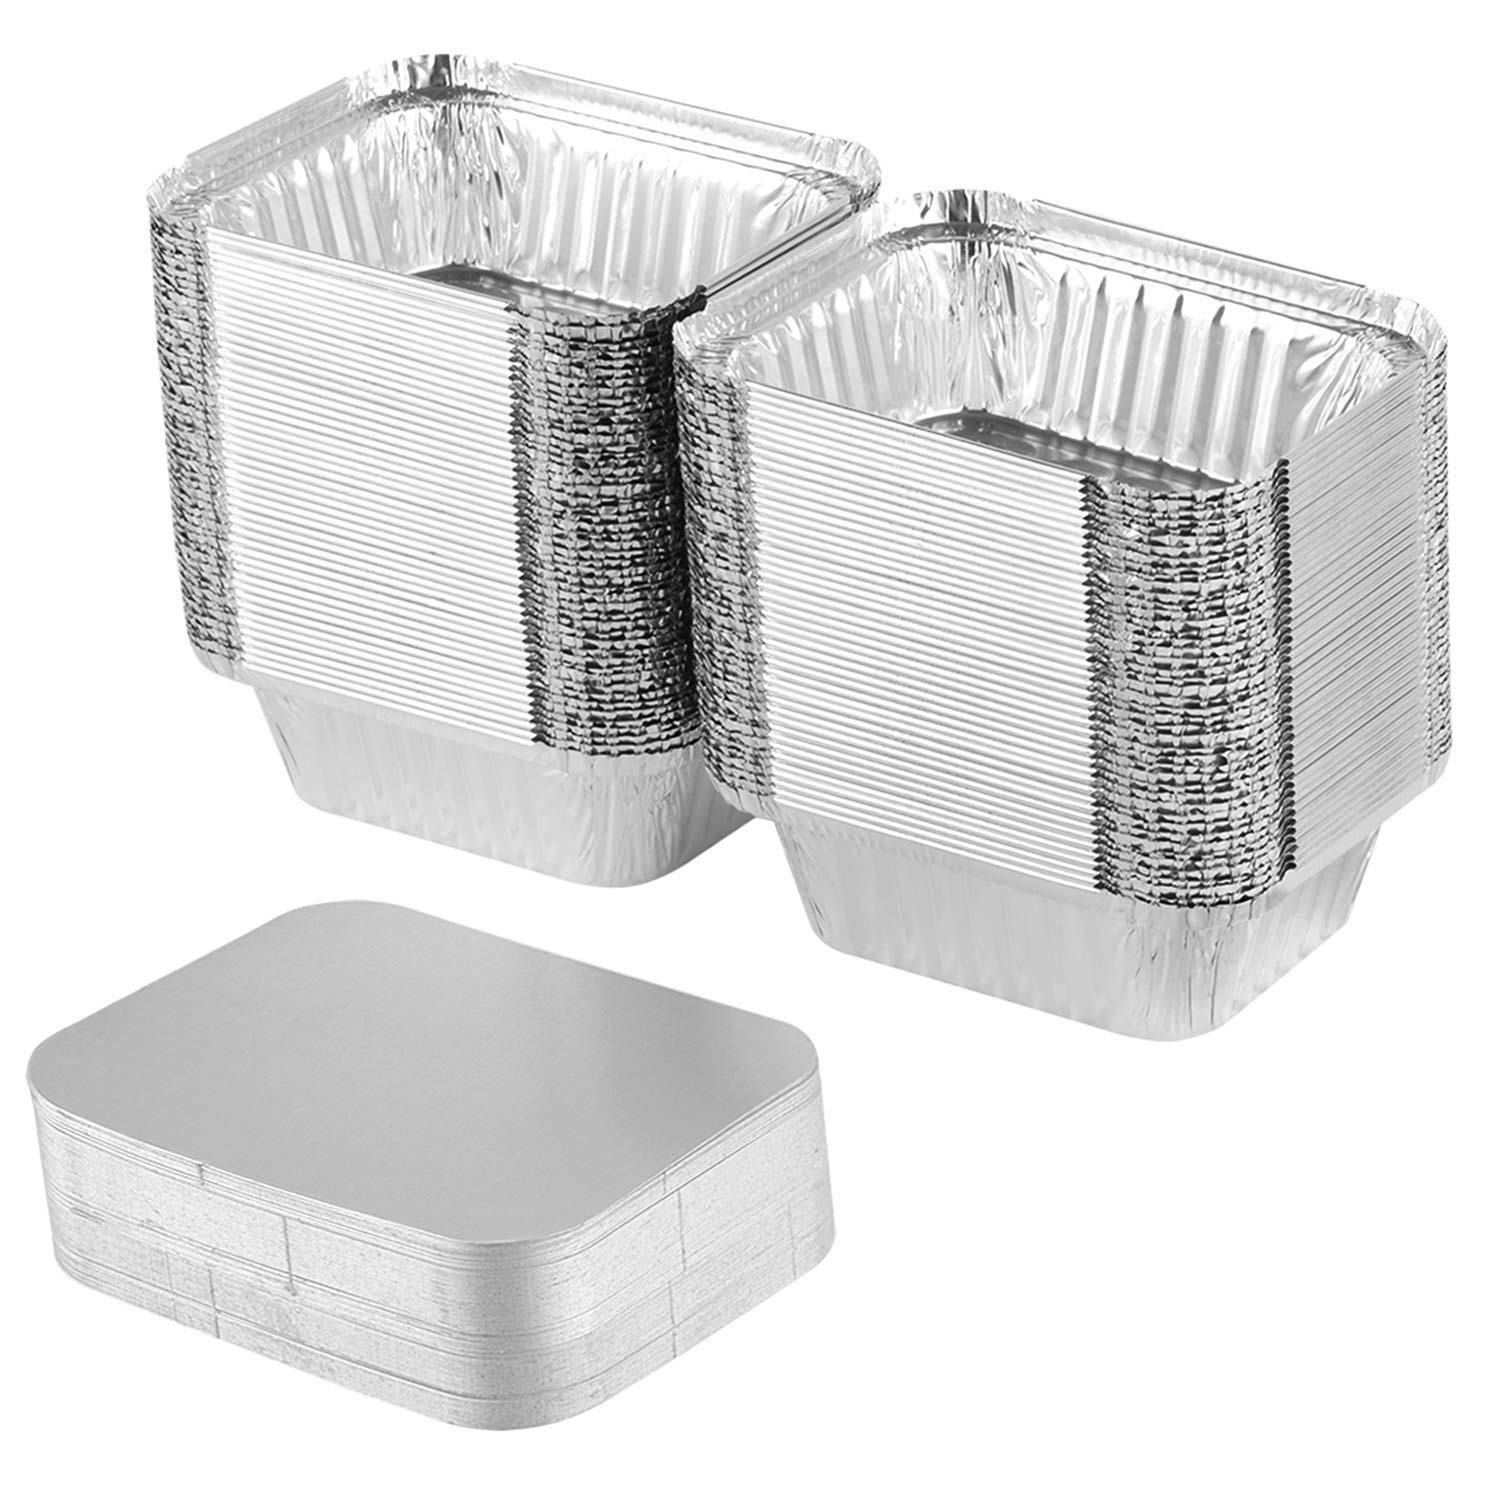 XIAFEI Disposable Durable Aluminum Oblong Foil Pan, TakeOut Containers, Pack of 100 With Board Lids